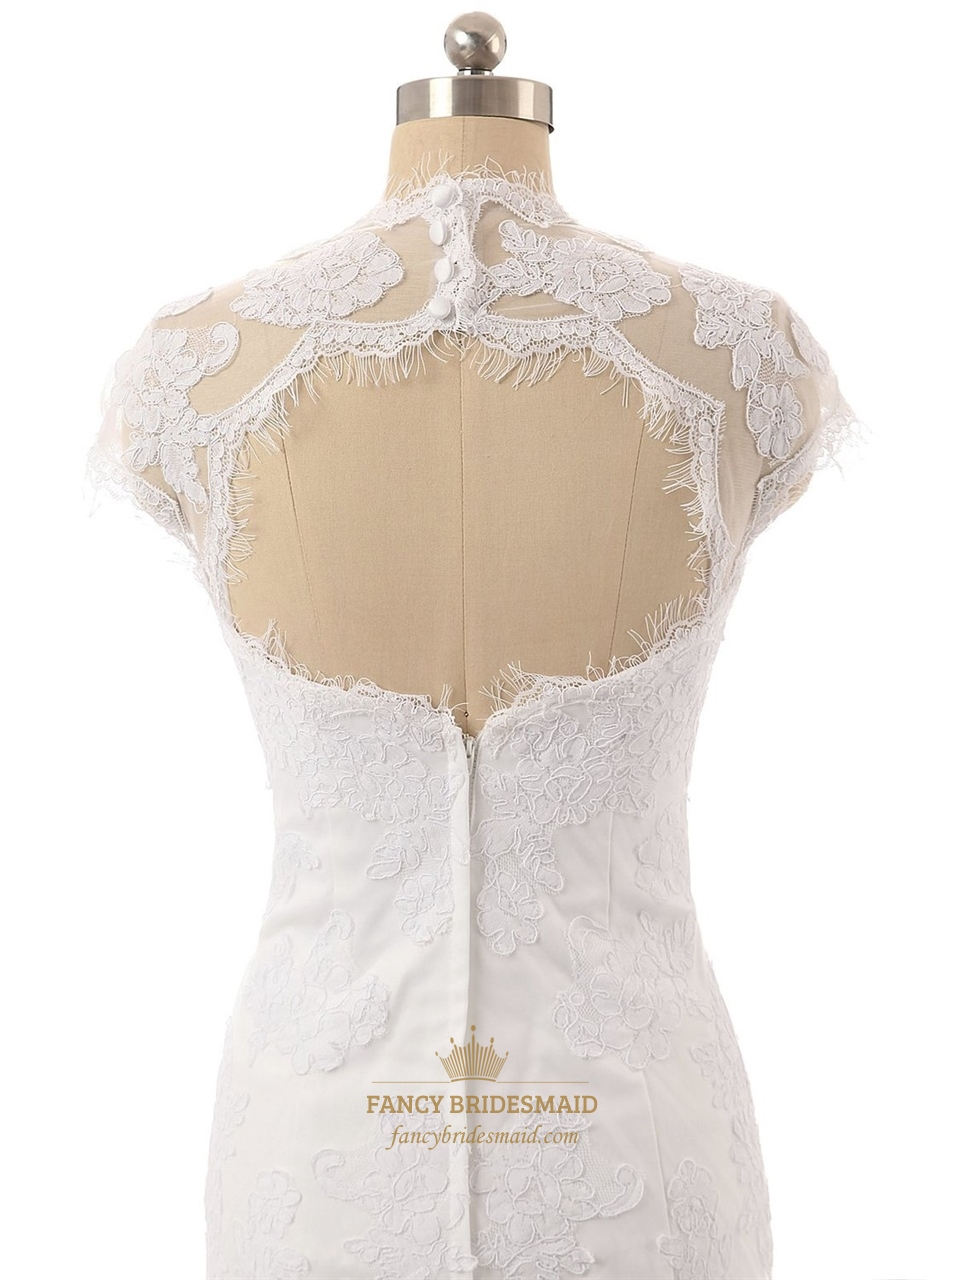 Wedding dress lace cap sleeve keyhole back discount for Lace cap sleeve keyhole back wedding dress